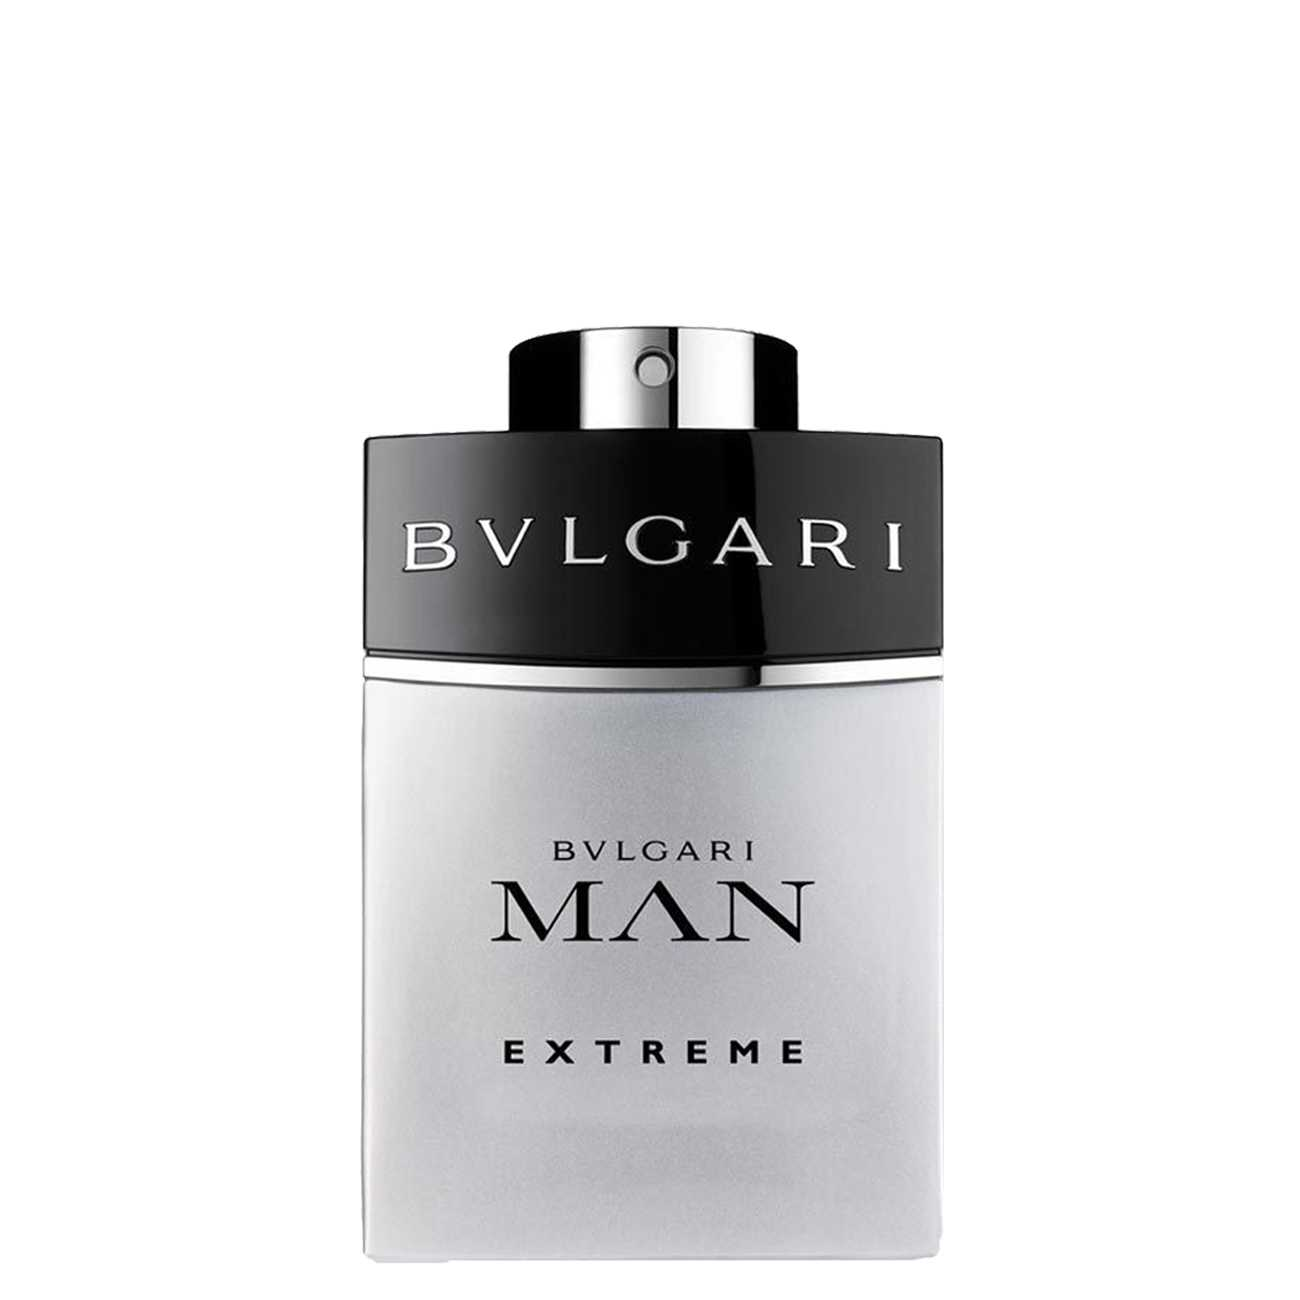 MAN EXTREME 60ml poza